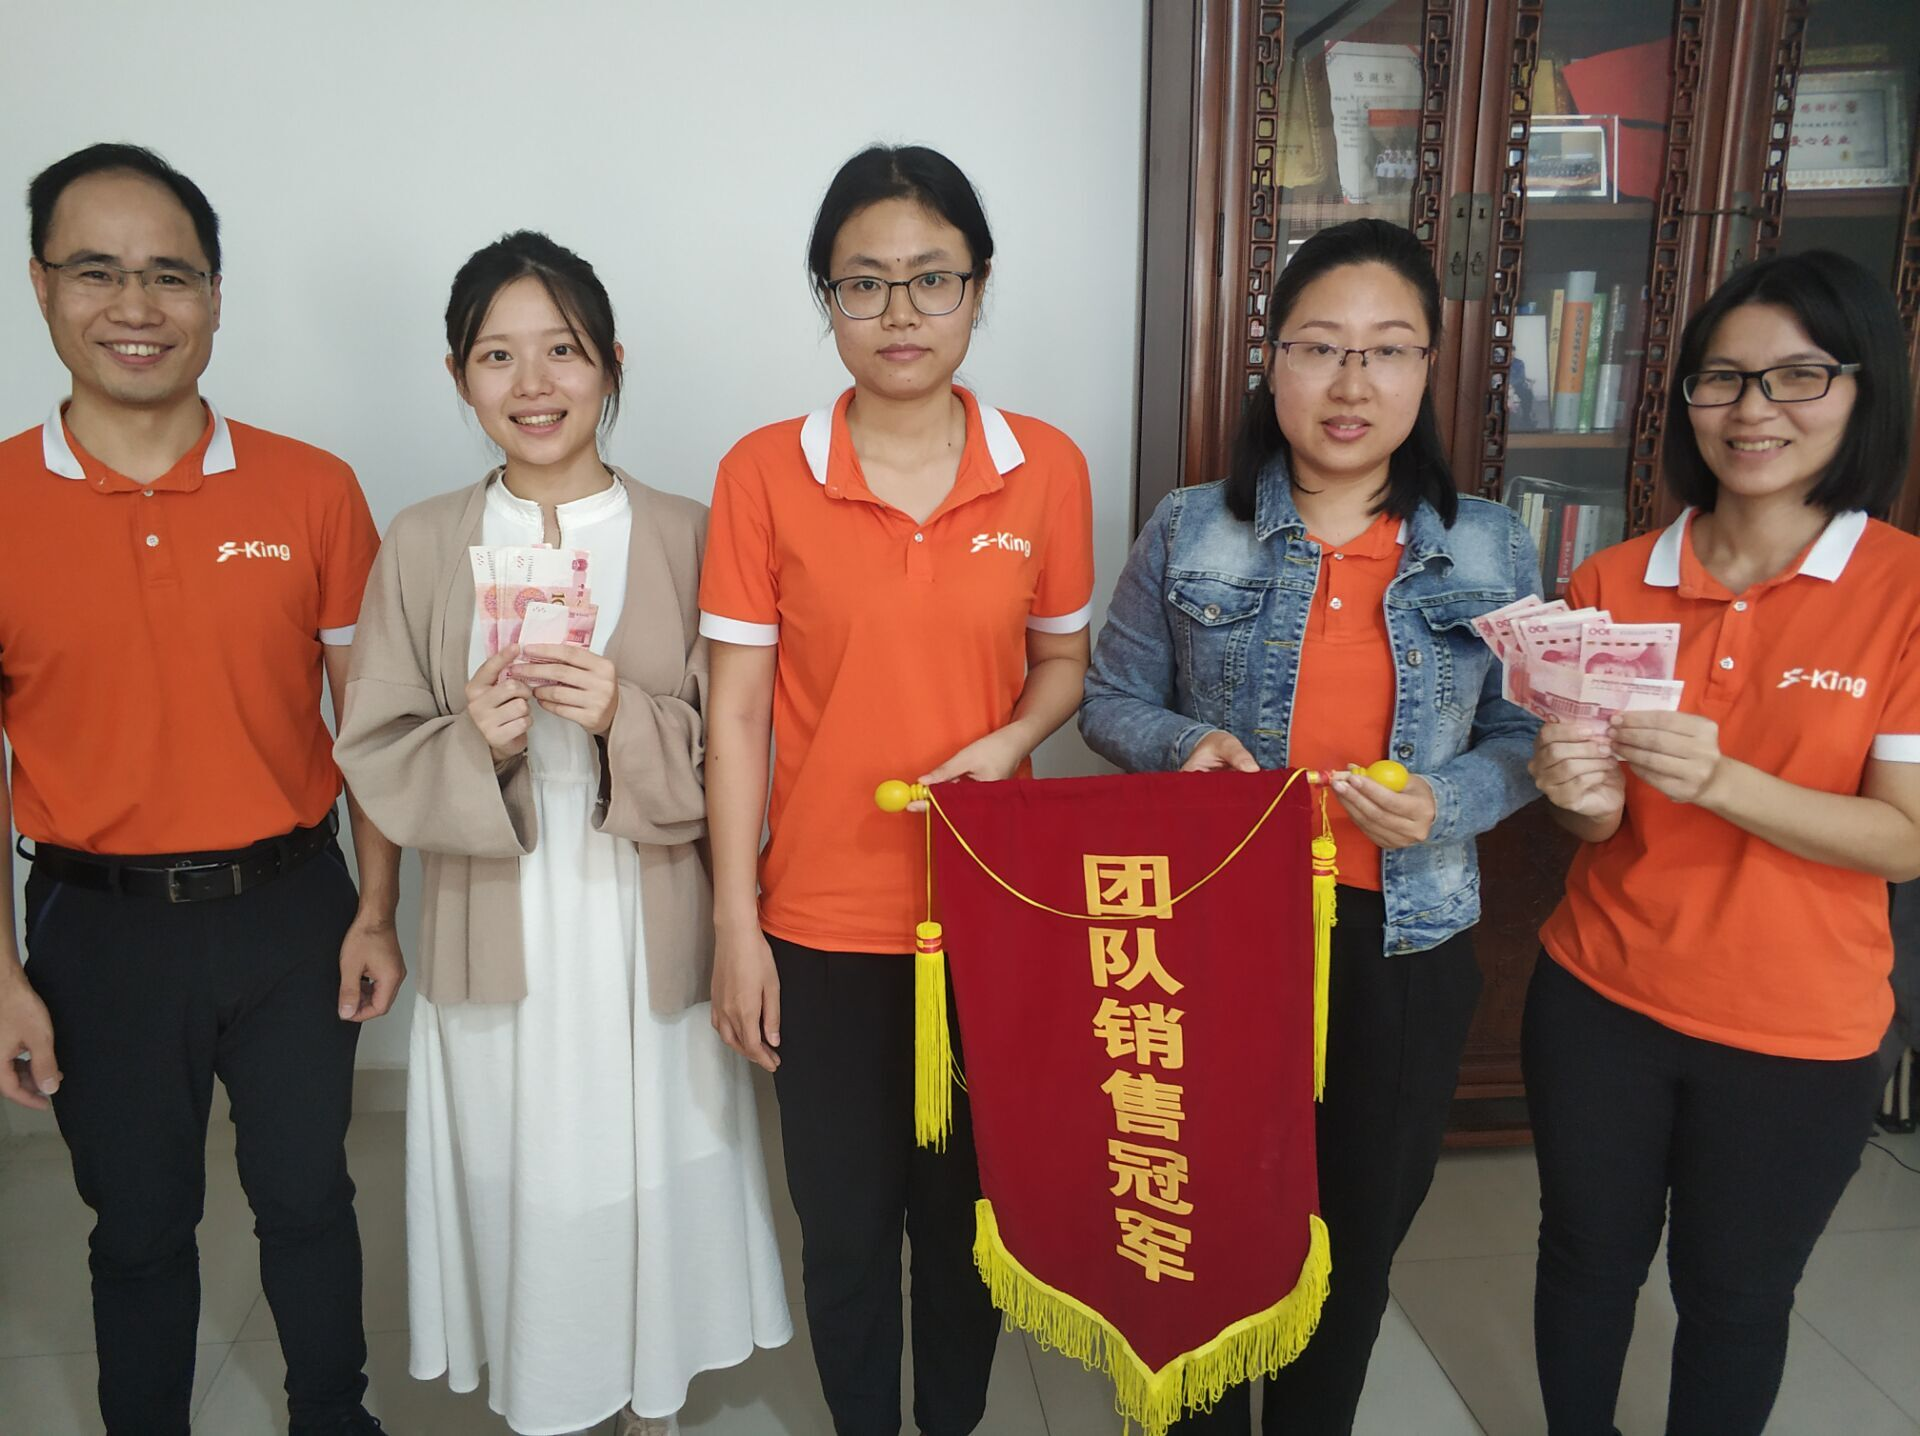 S-King-S-king Monthly Summary Meeting News About Shoe Insoles Supplier